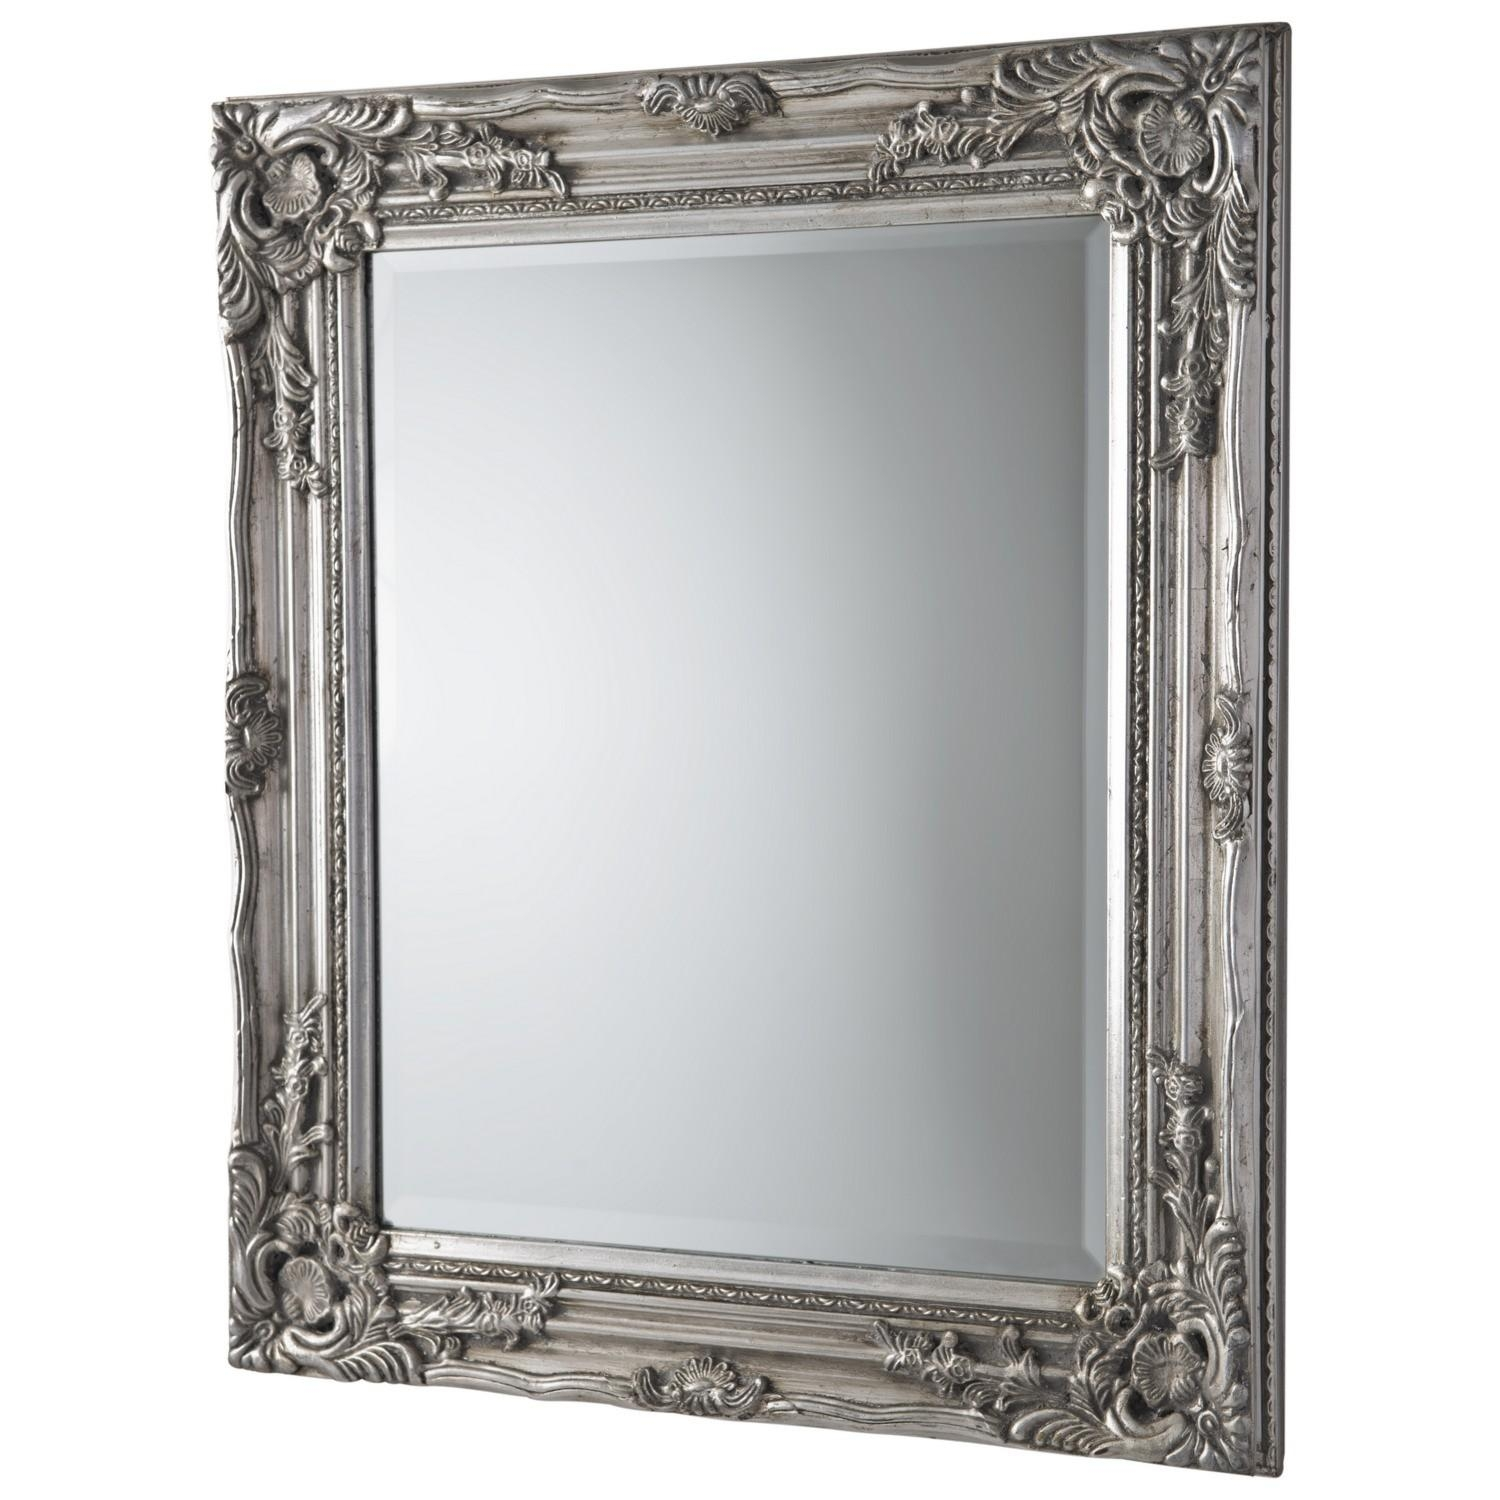 Pewter Sahara Mirror Regarding Pewter Ornate Mirror (Image 15 of 20)